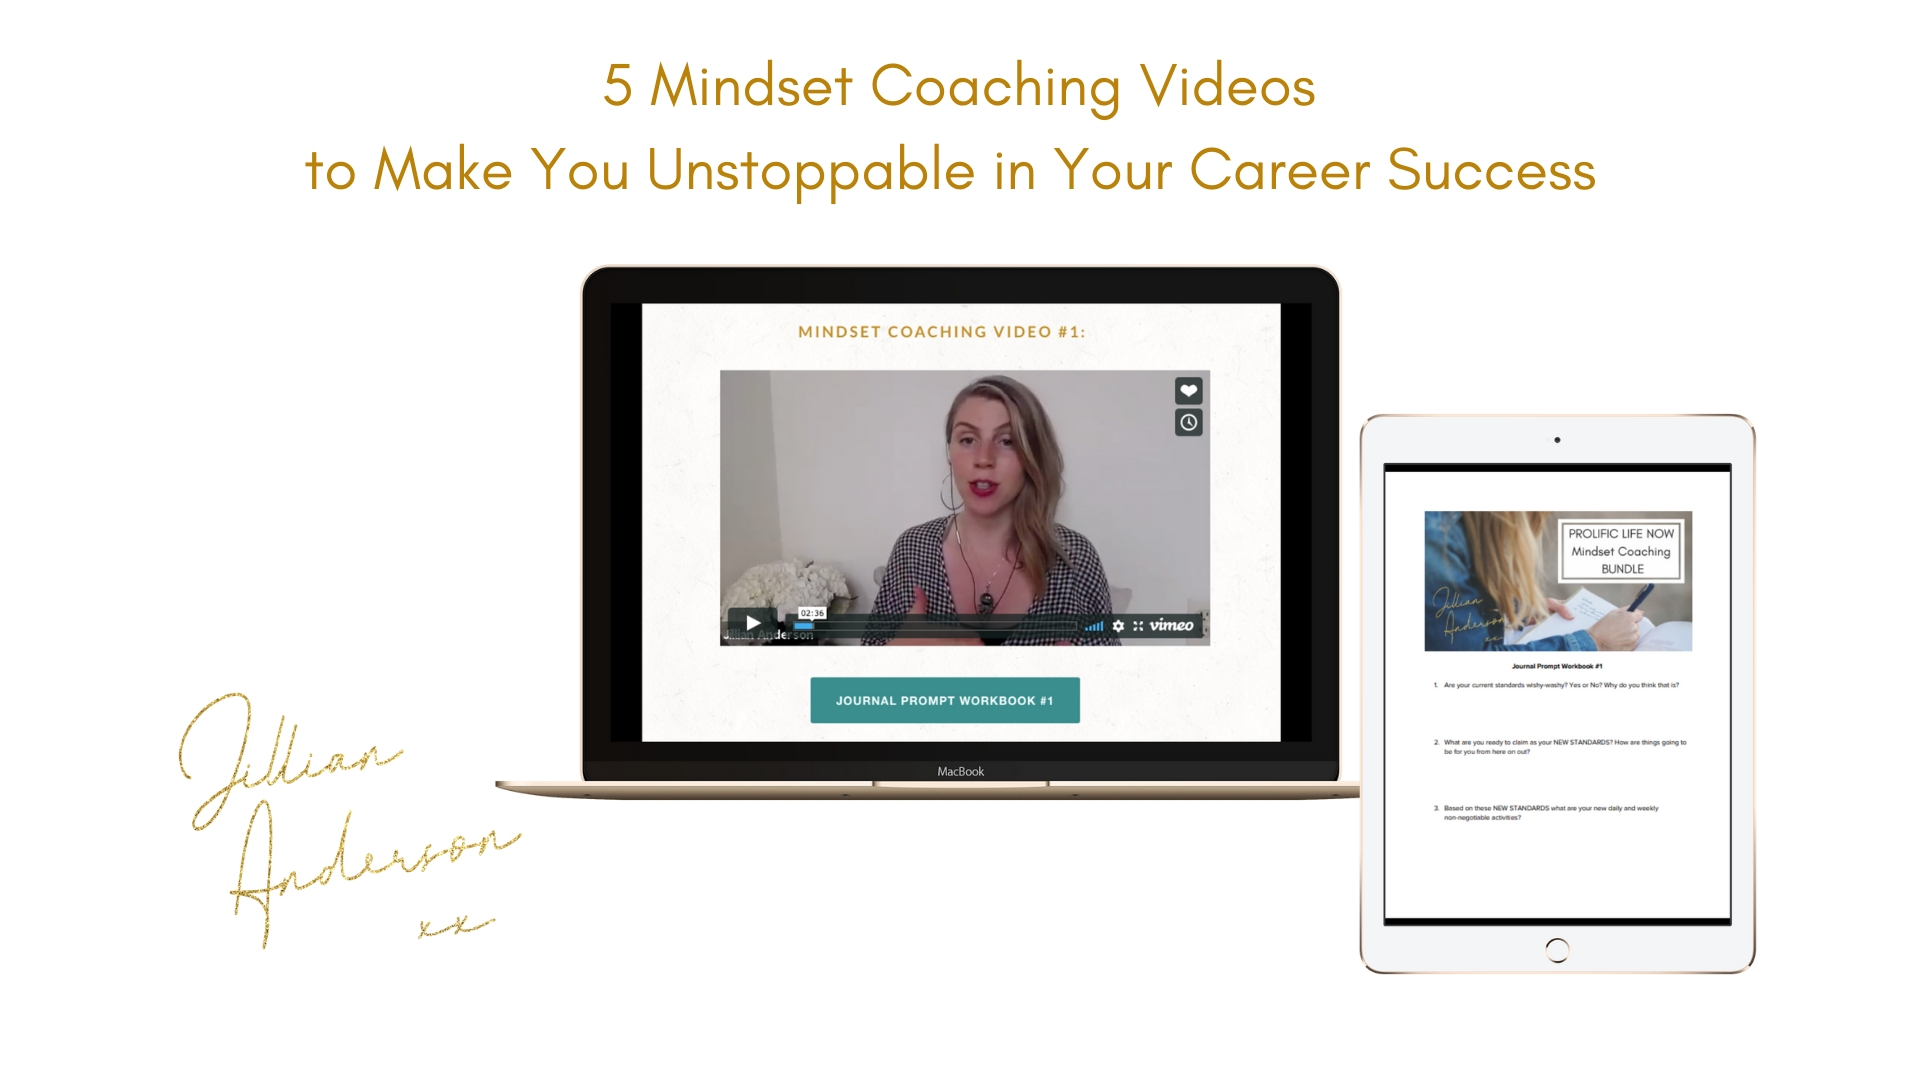 5 Mindset Coaching Videos to Make You Unstoppable as You Create-2.jpg